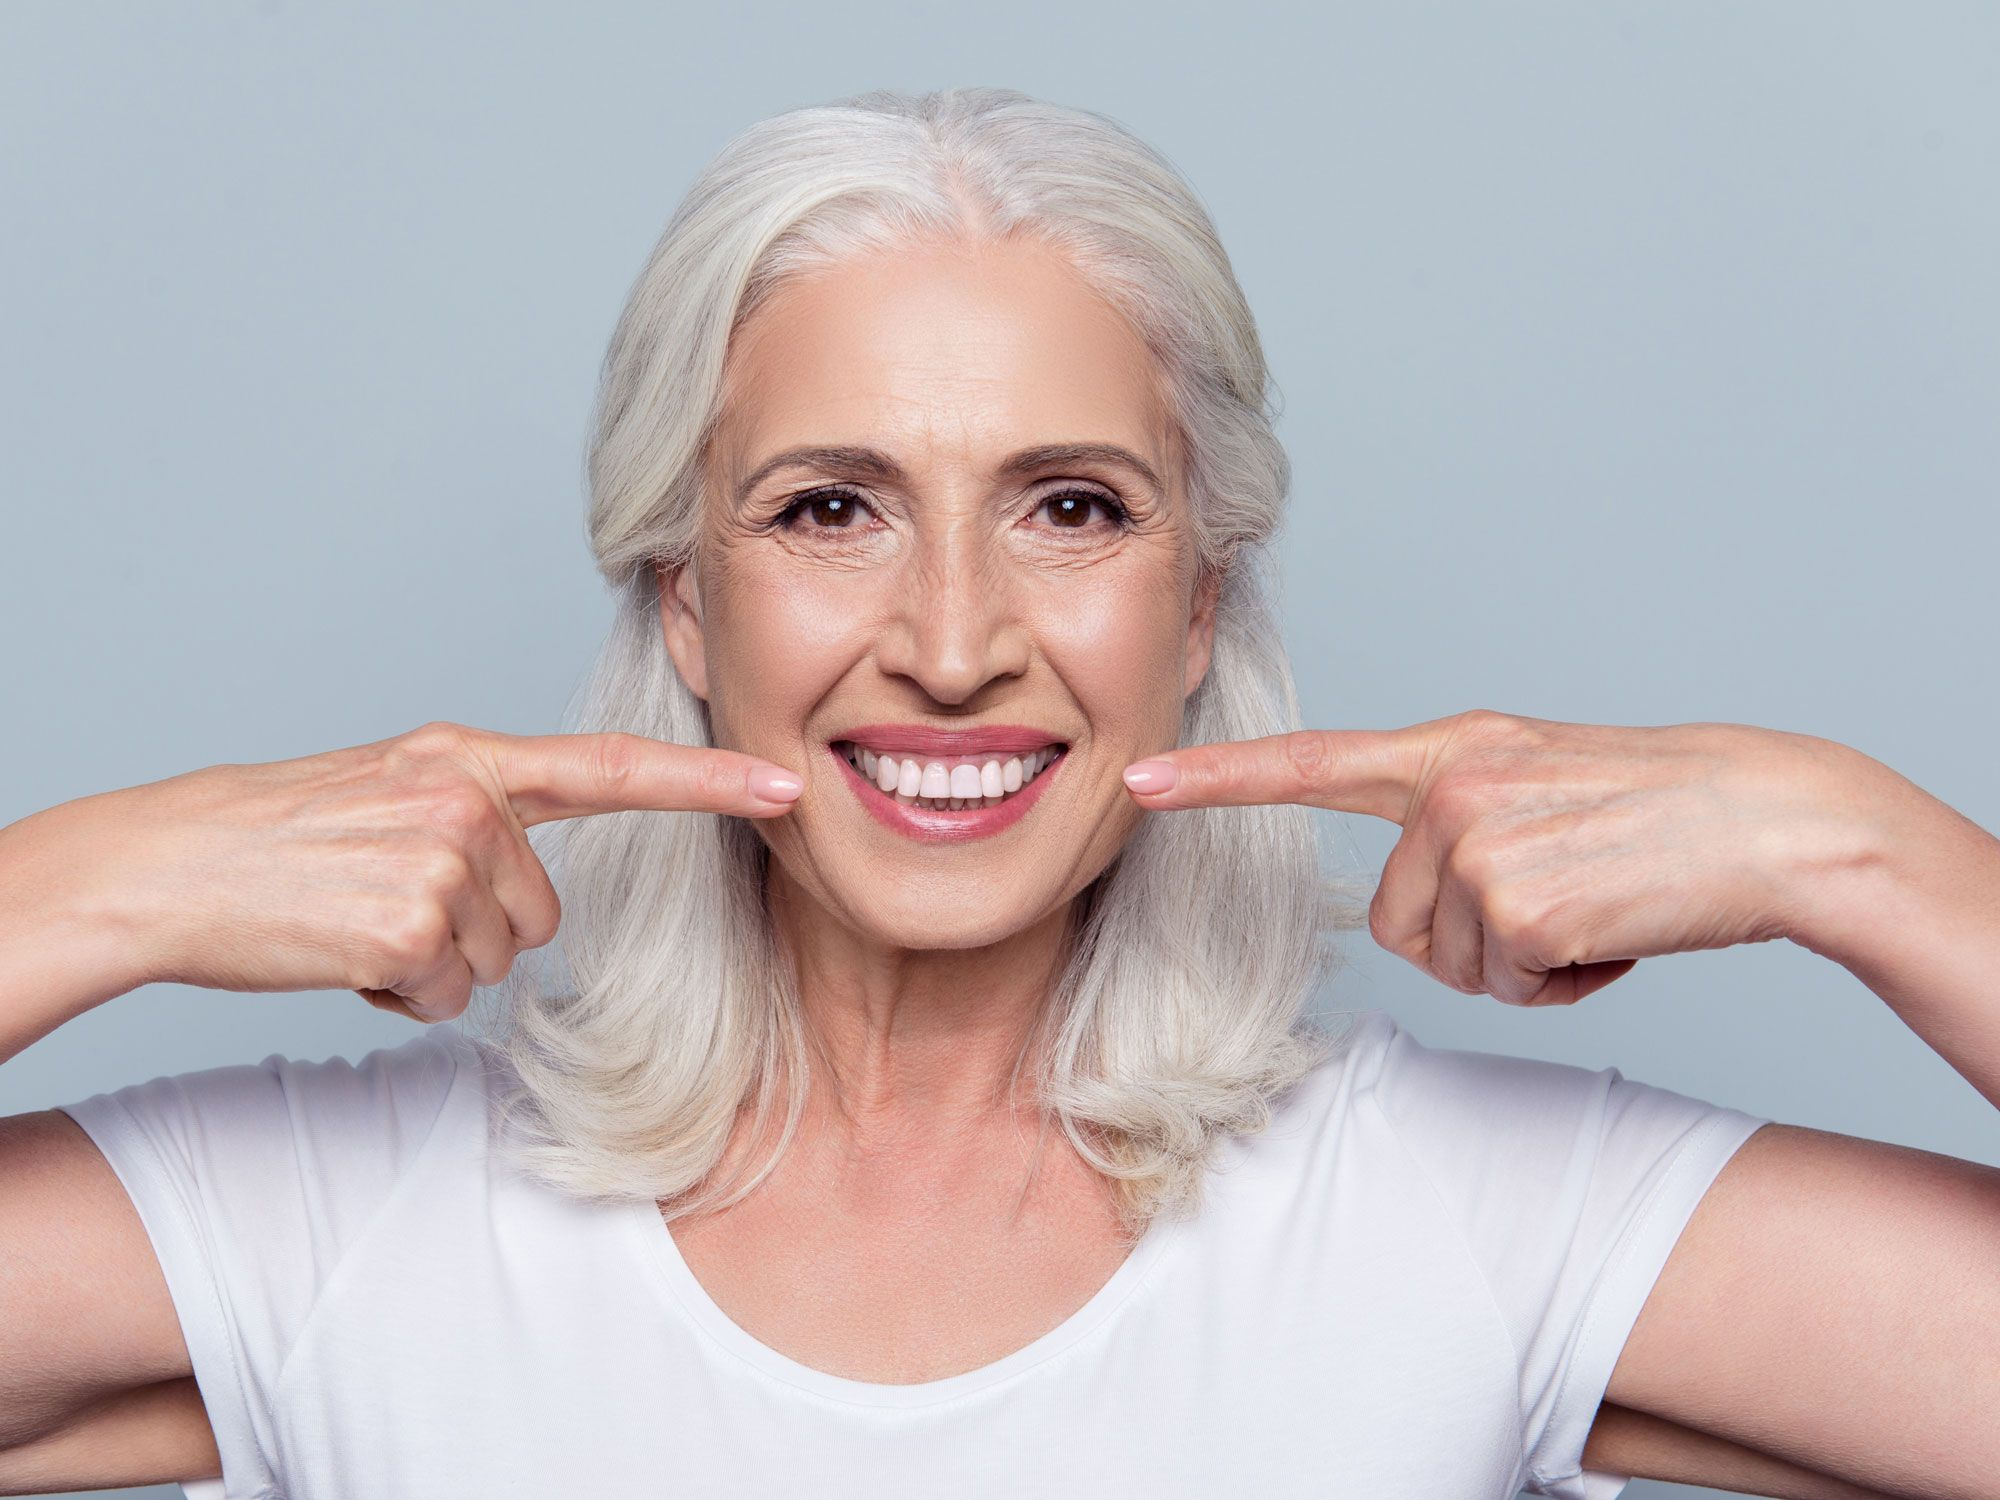 How long does it take to get dentures after teeth pulled